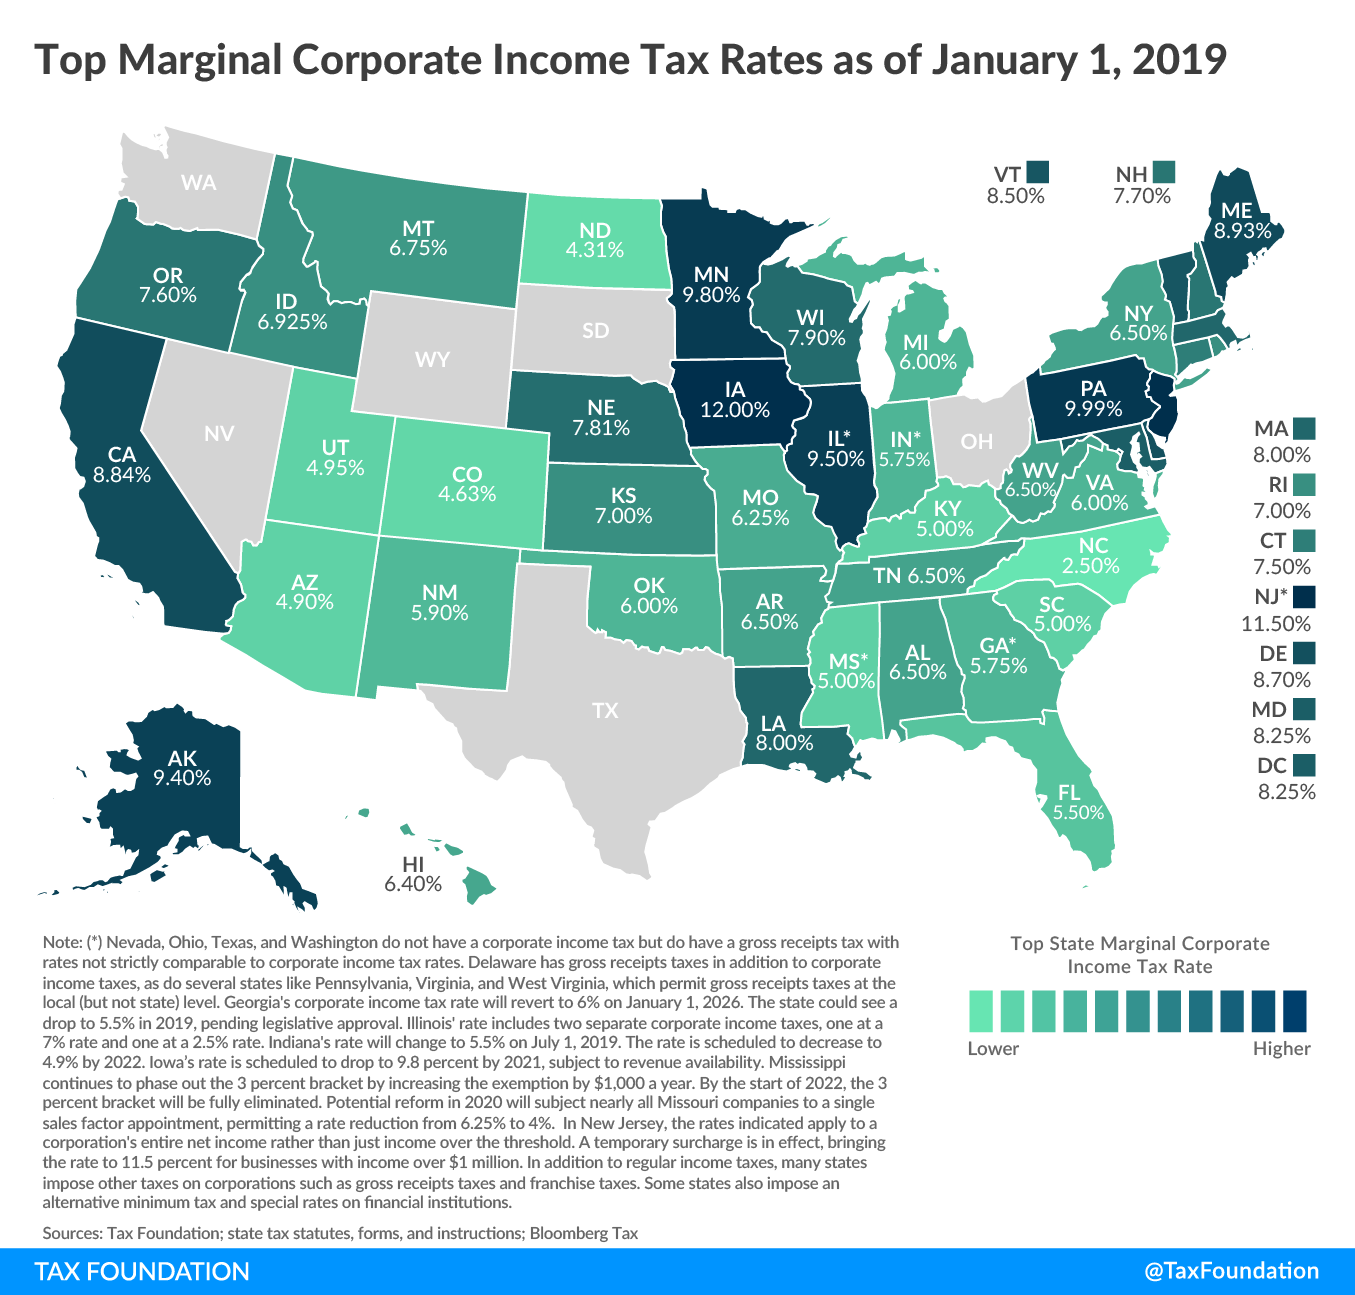 North Carolina Tops List of Lowest Corporate Tax Rates in U.S. for 2019